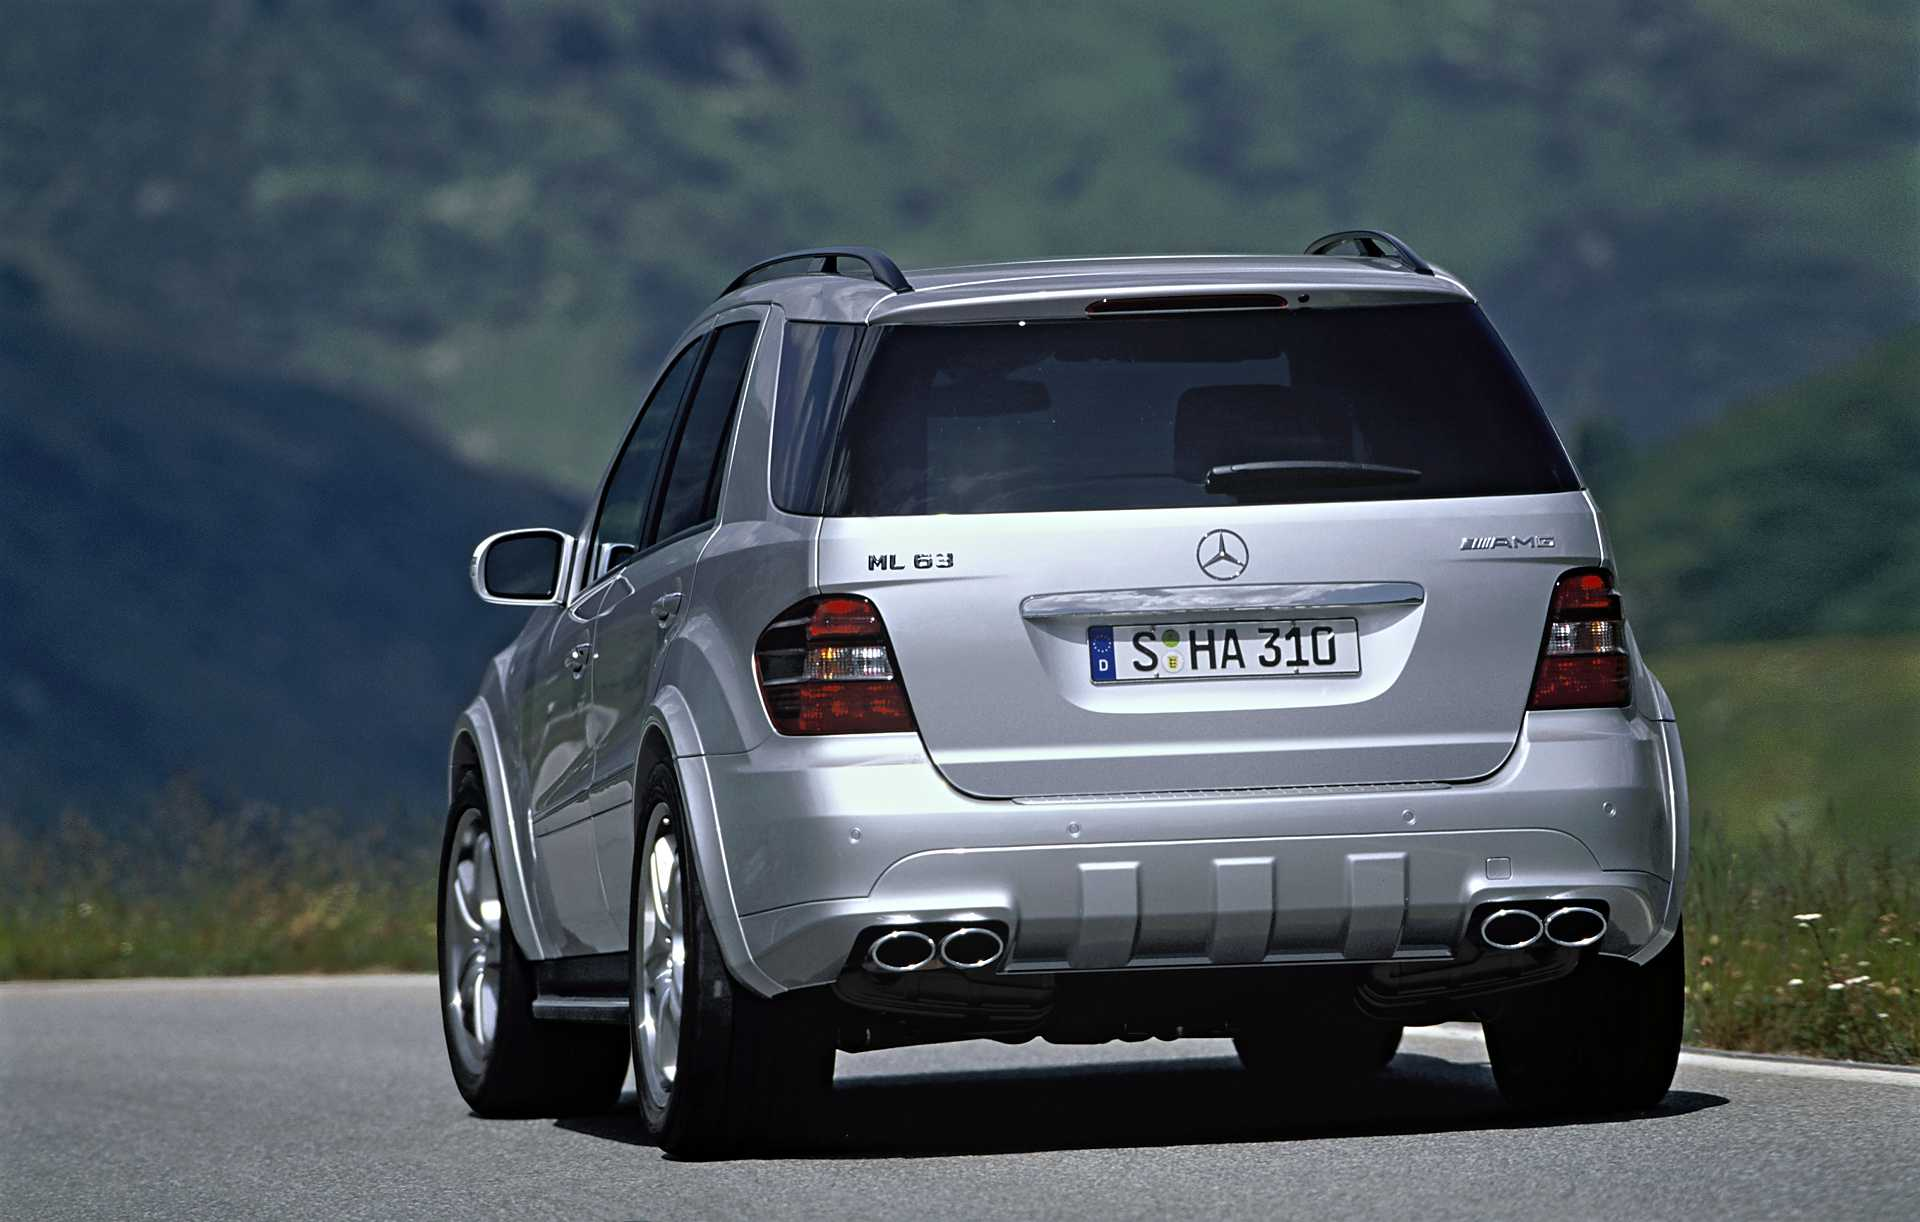 Back Side of Mercedes Benz ML 63 AMG 4MATIC AMG SpeedShift